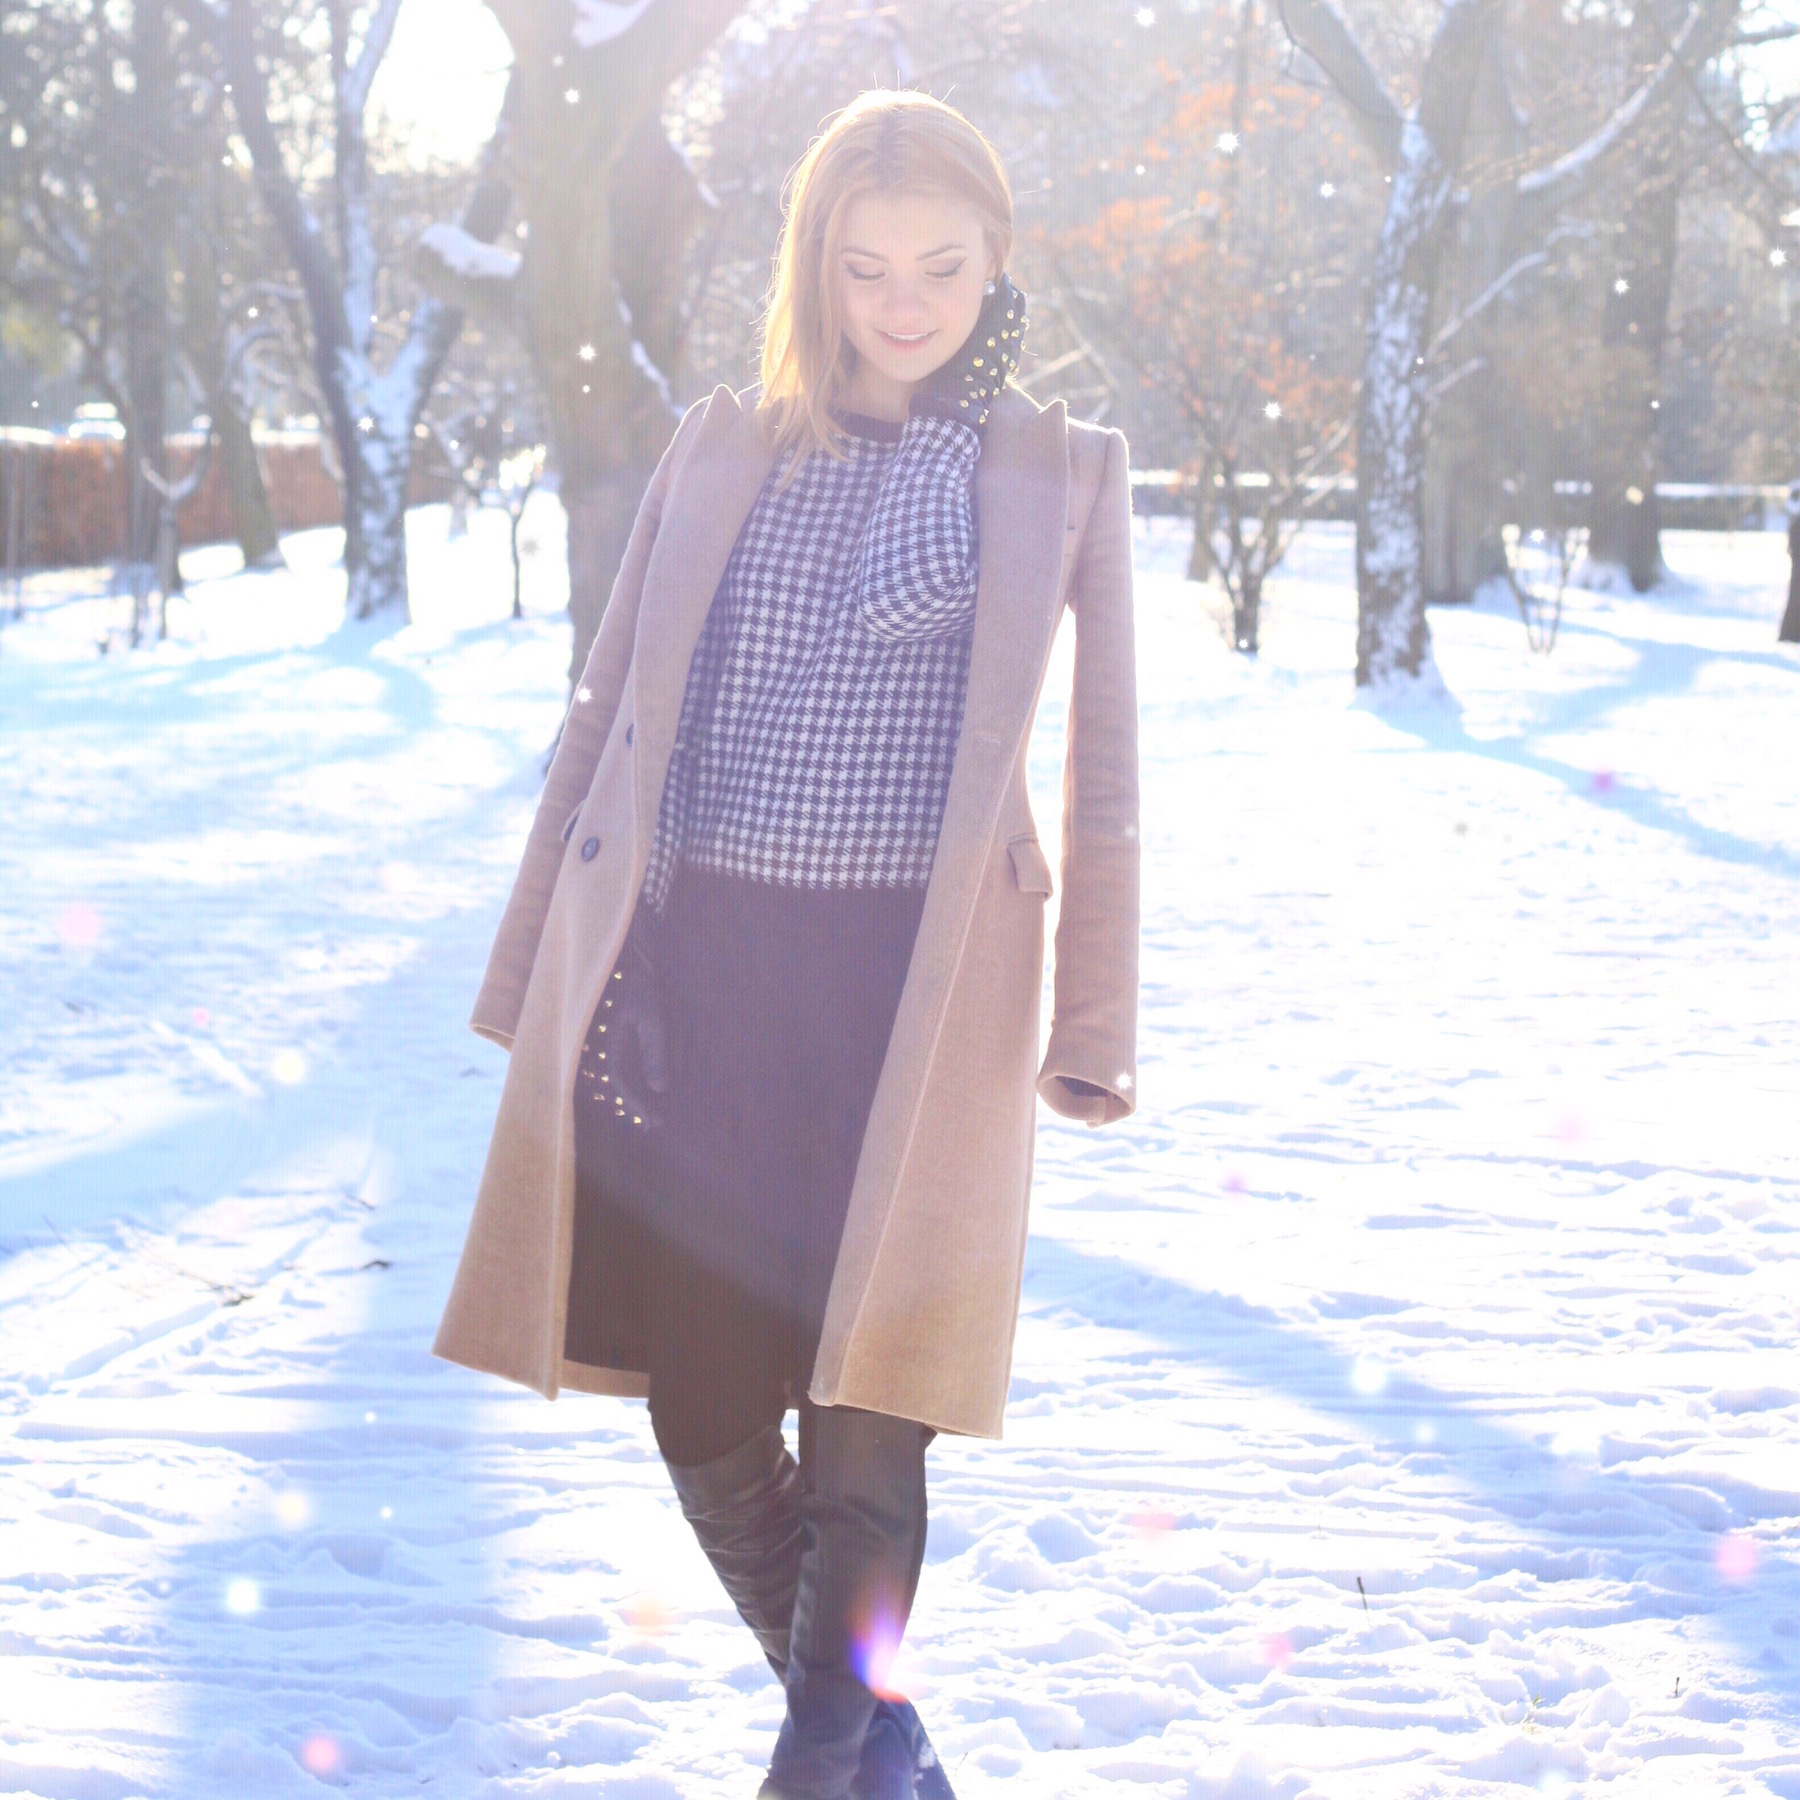 Juliana Chow Fashion Lifestyle Blog Model Winter Snow Outfit 6